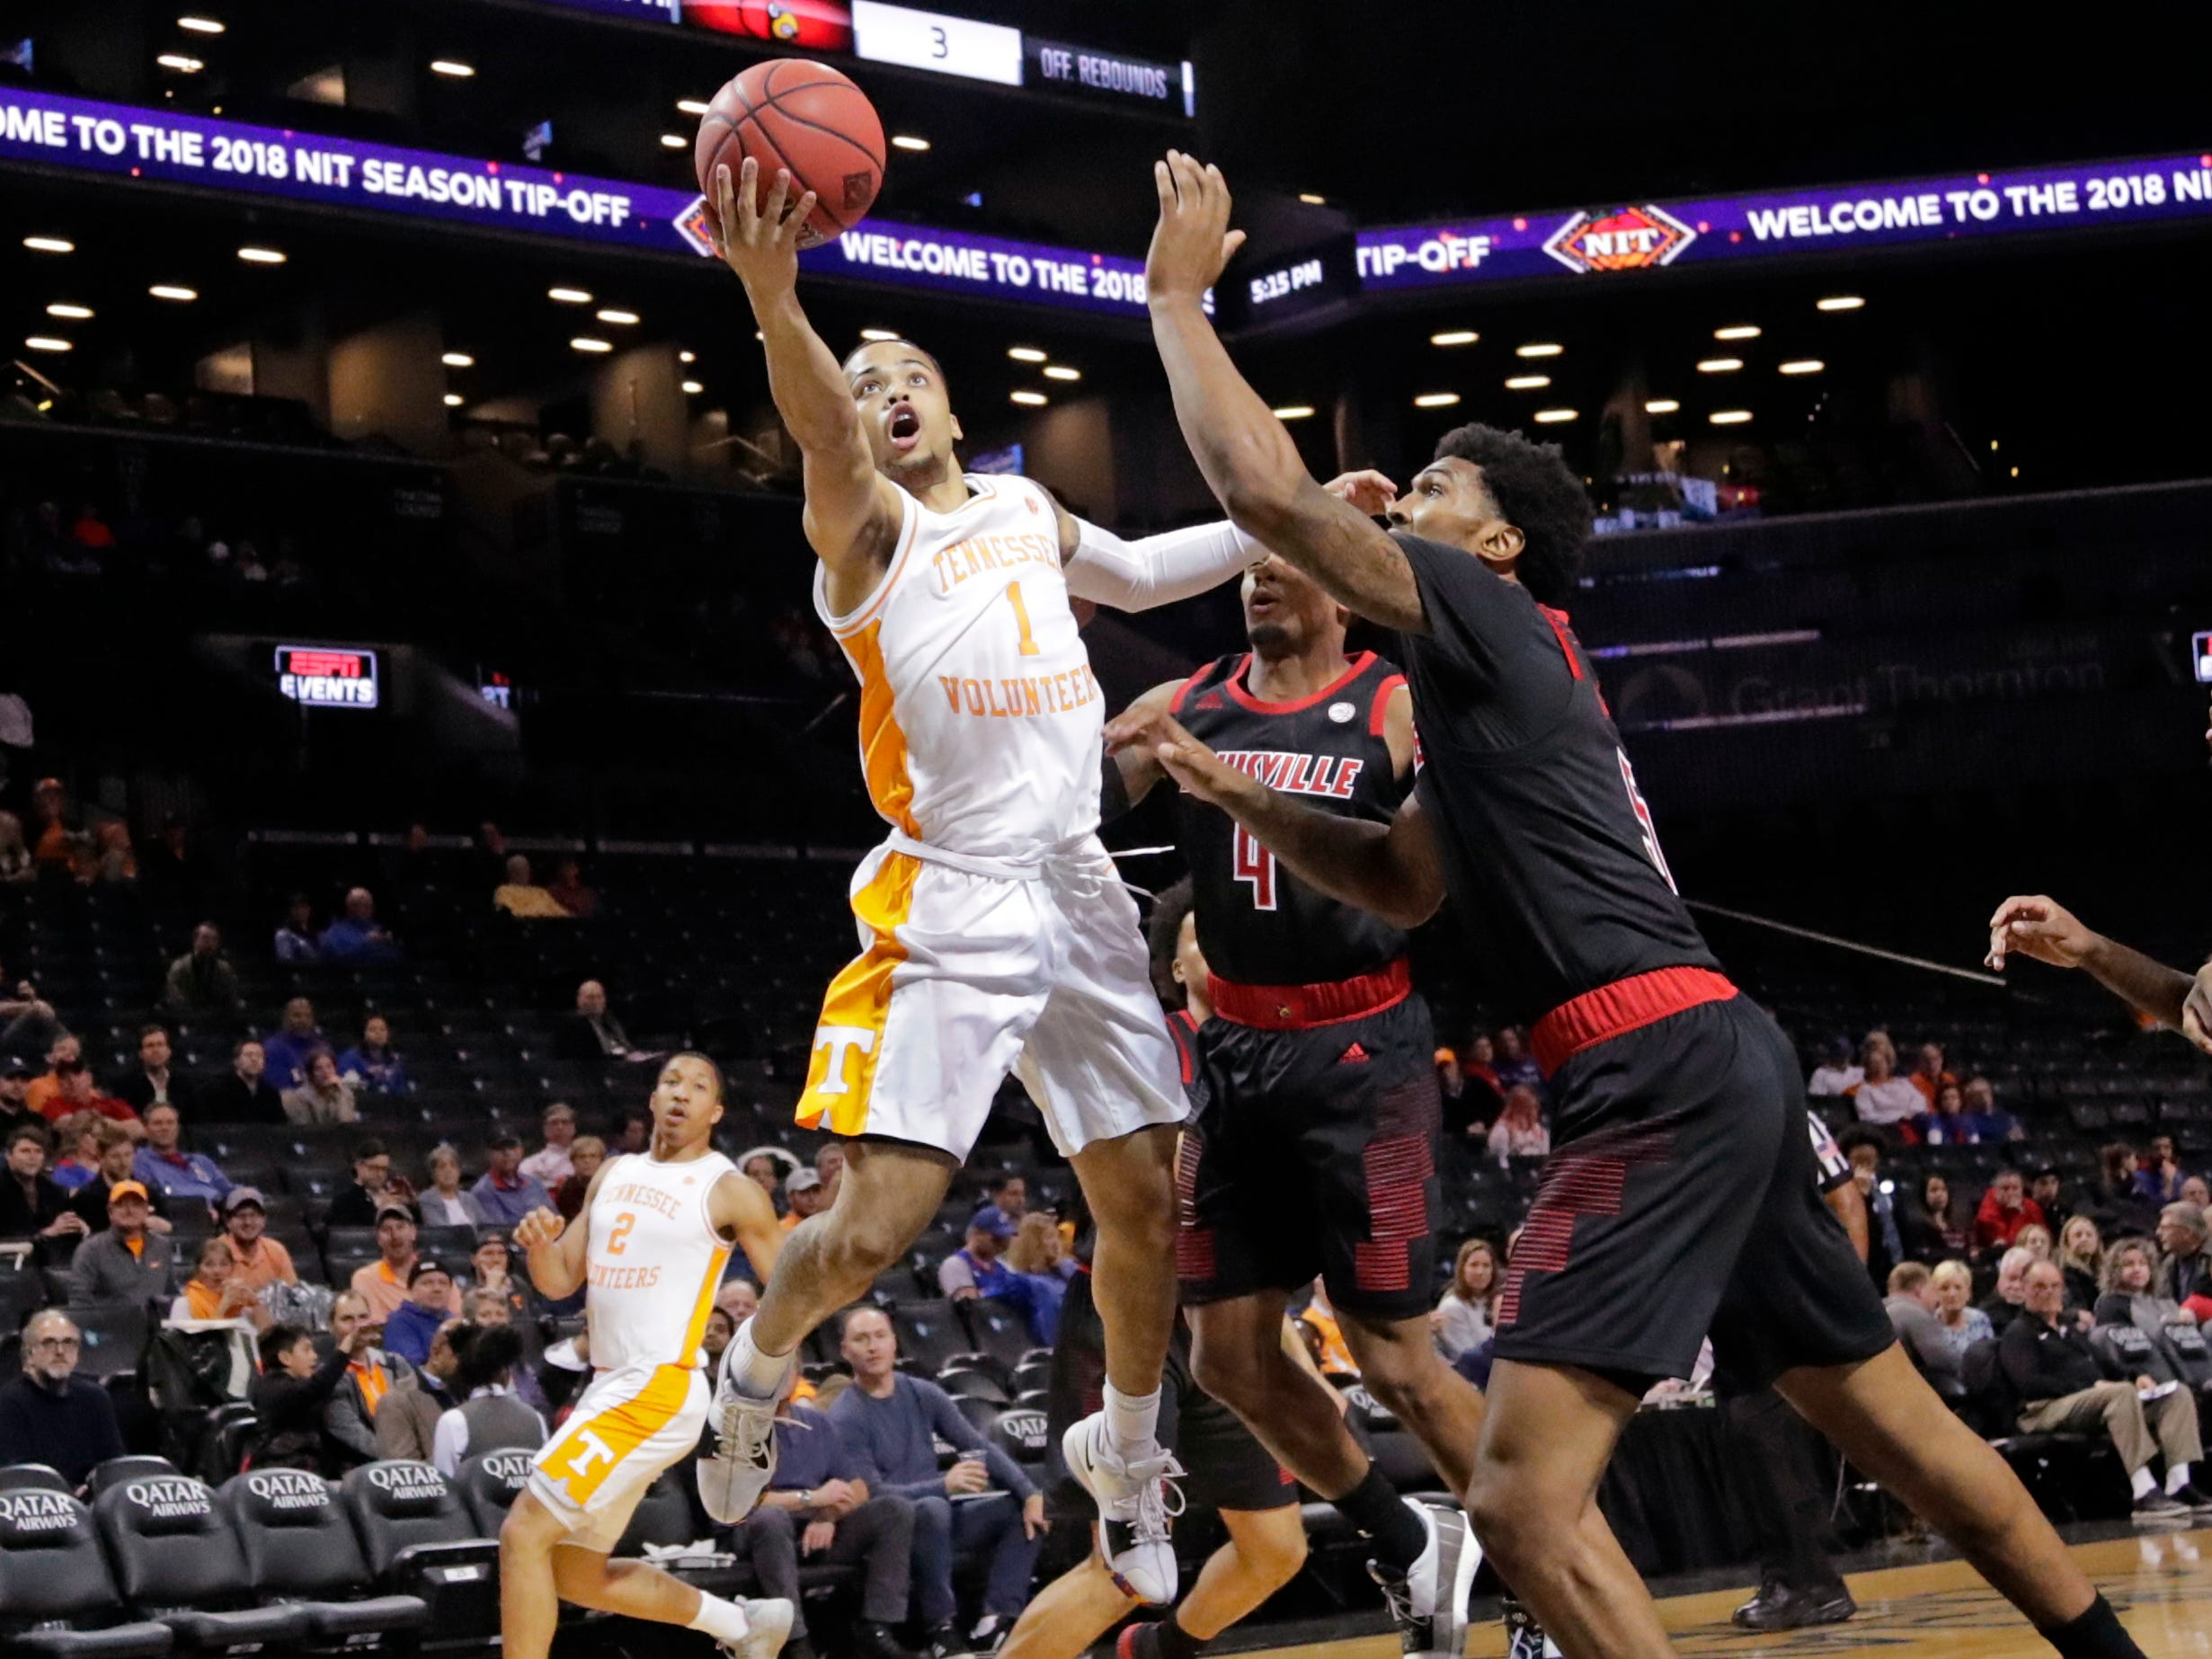 Tennessee's Lamonte Turner, left, drives past Louisville's Malik Williams, right, during the first half of an NCAA college basketball game in the NIT Season Tip-Off tournament Wednesday, Nov. 21, 2018, in New York. (AP Photo/Frank Franklin II)